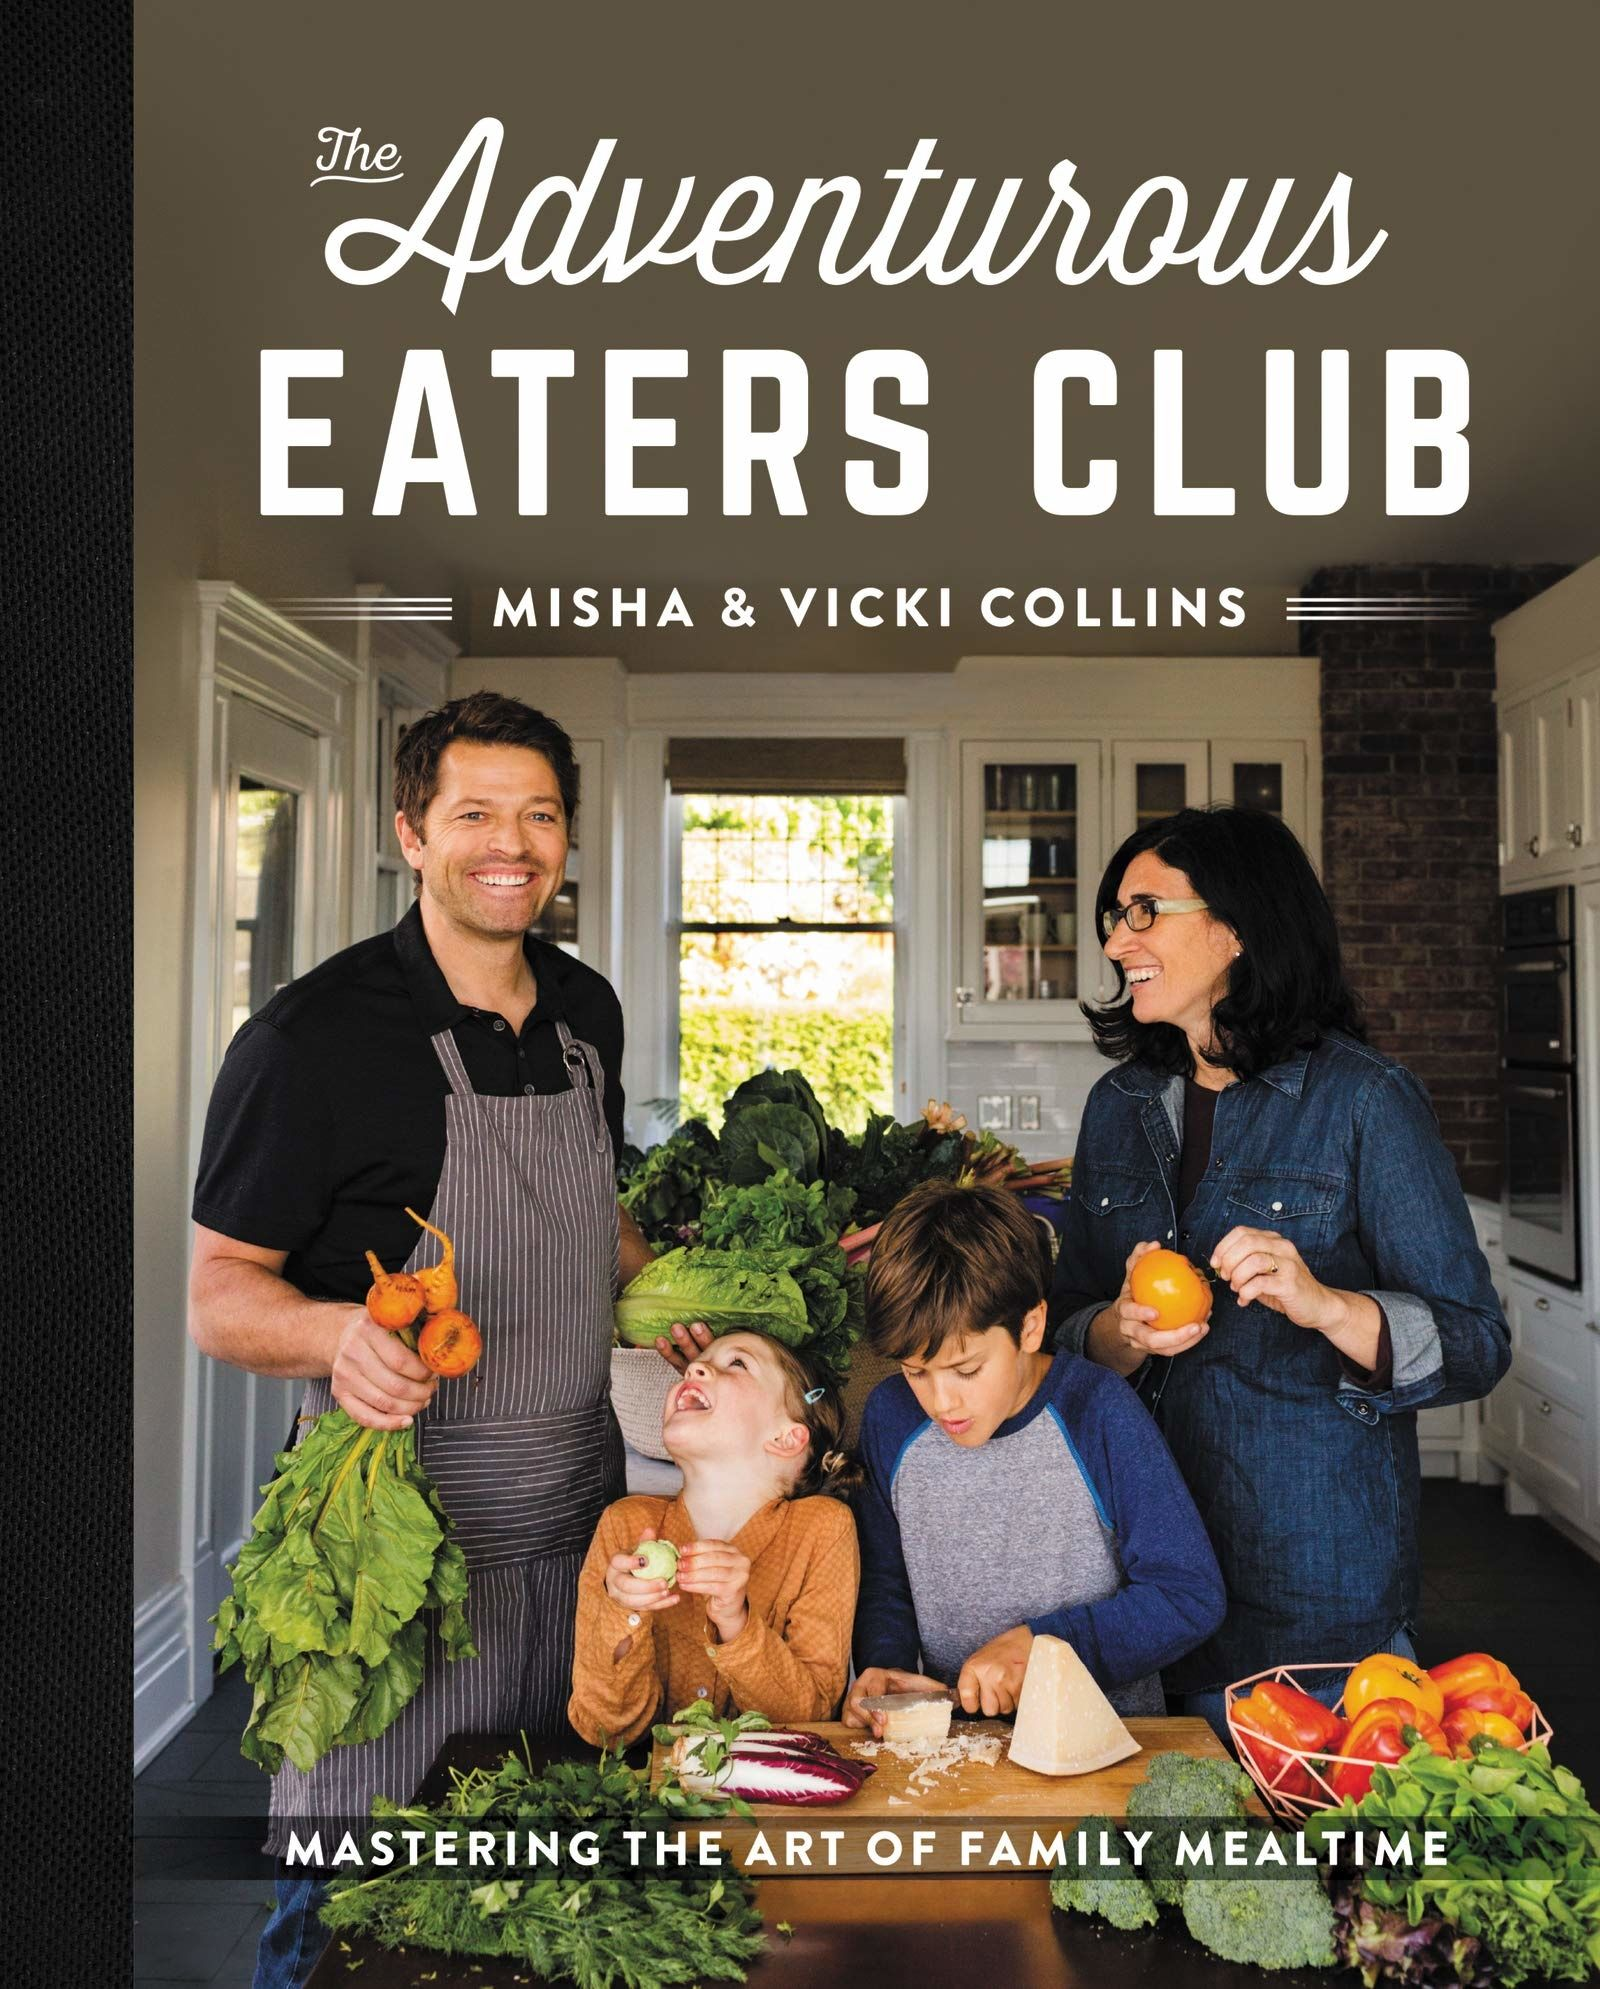 Book jacket of Misha Collins' cookbook.